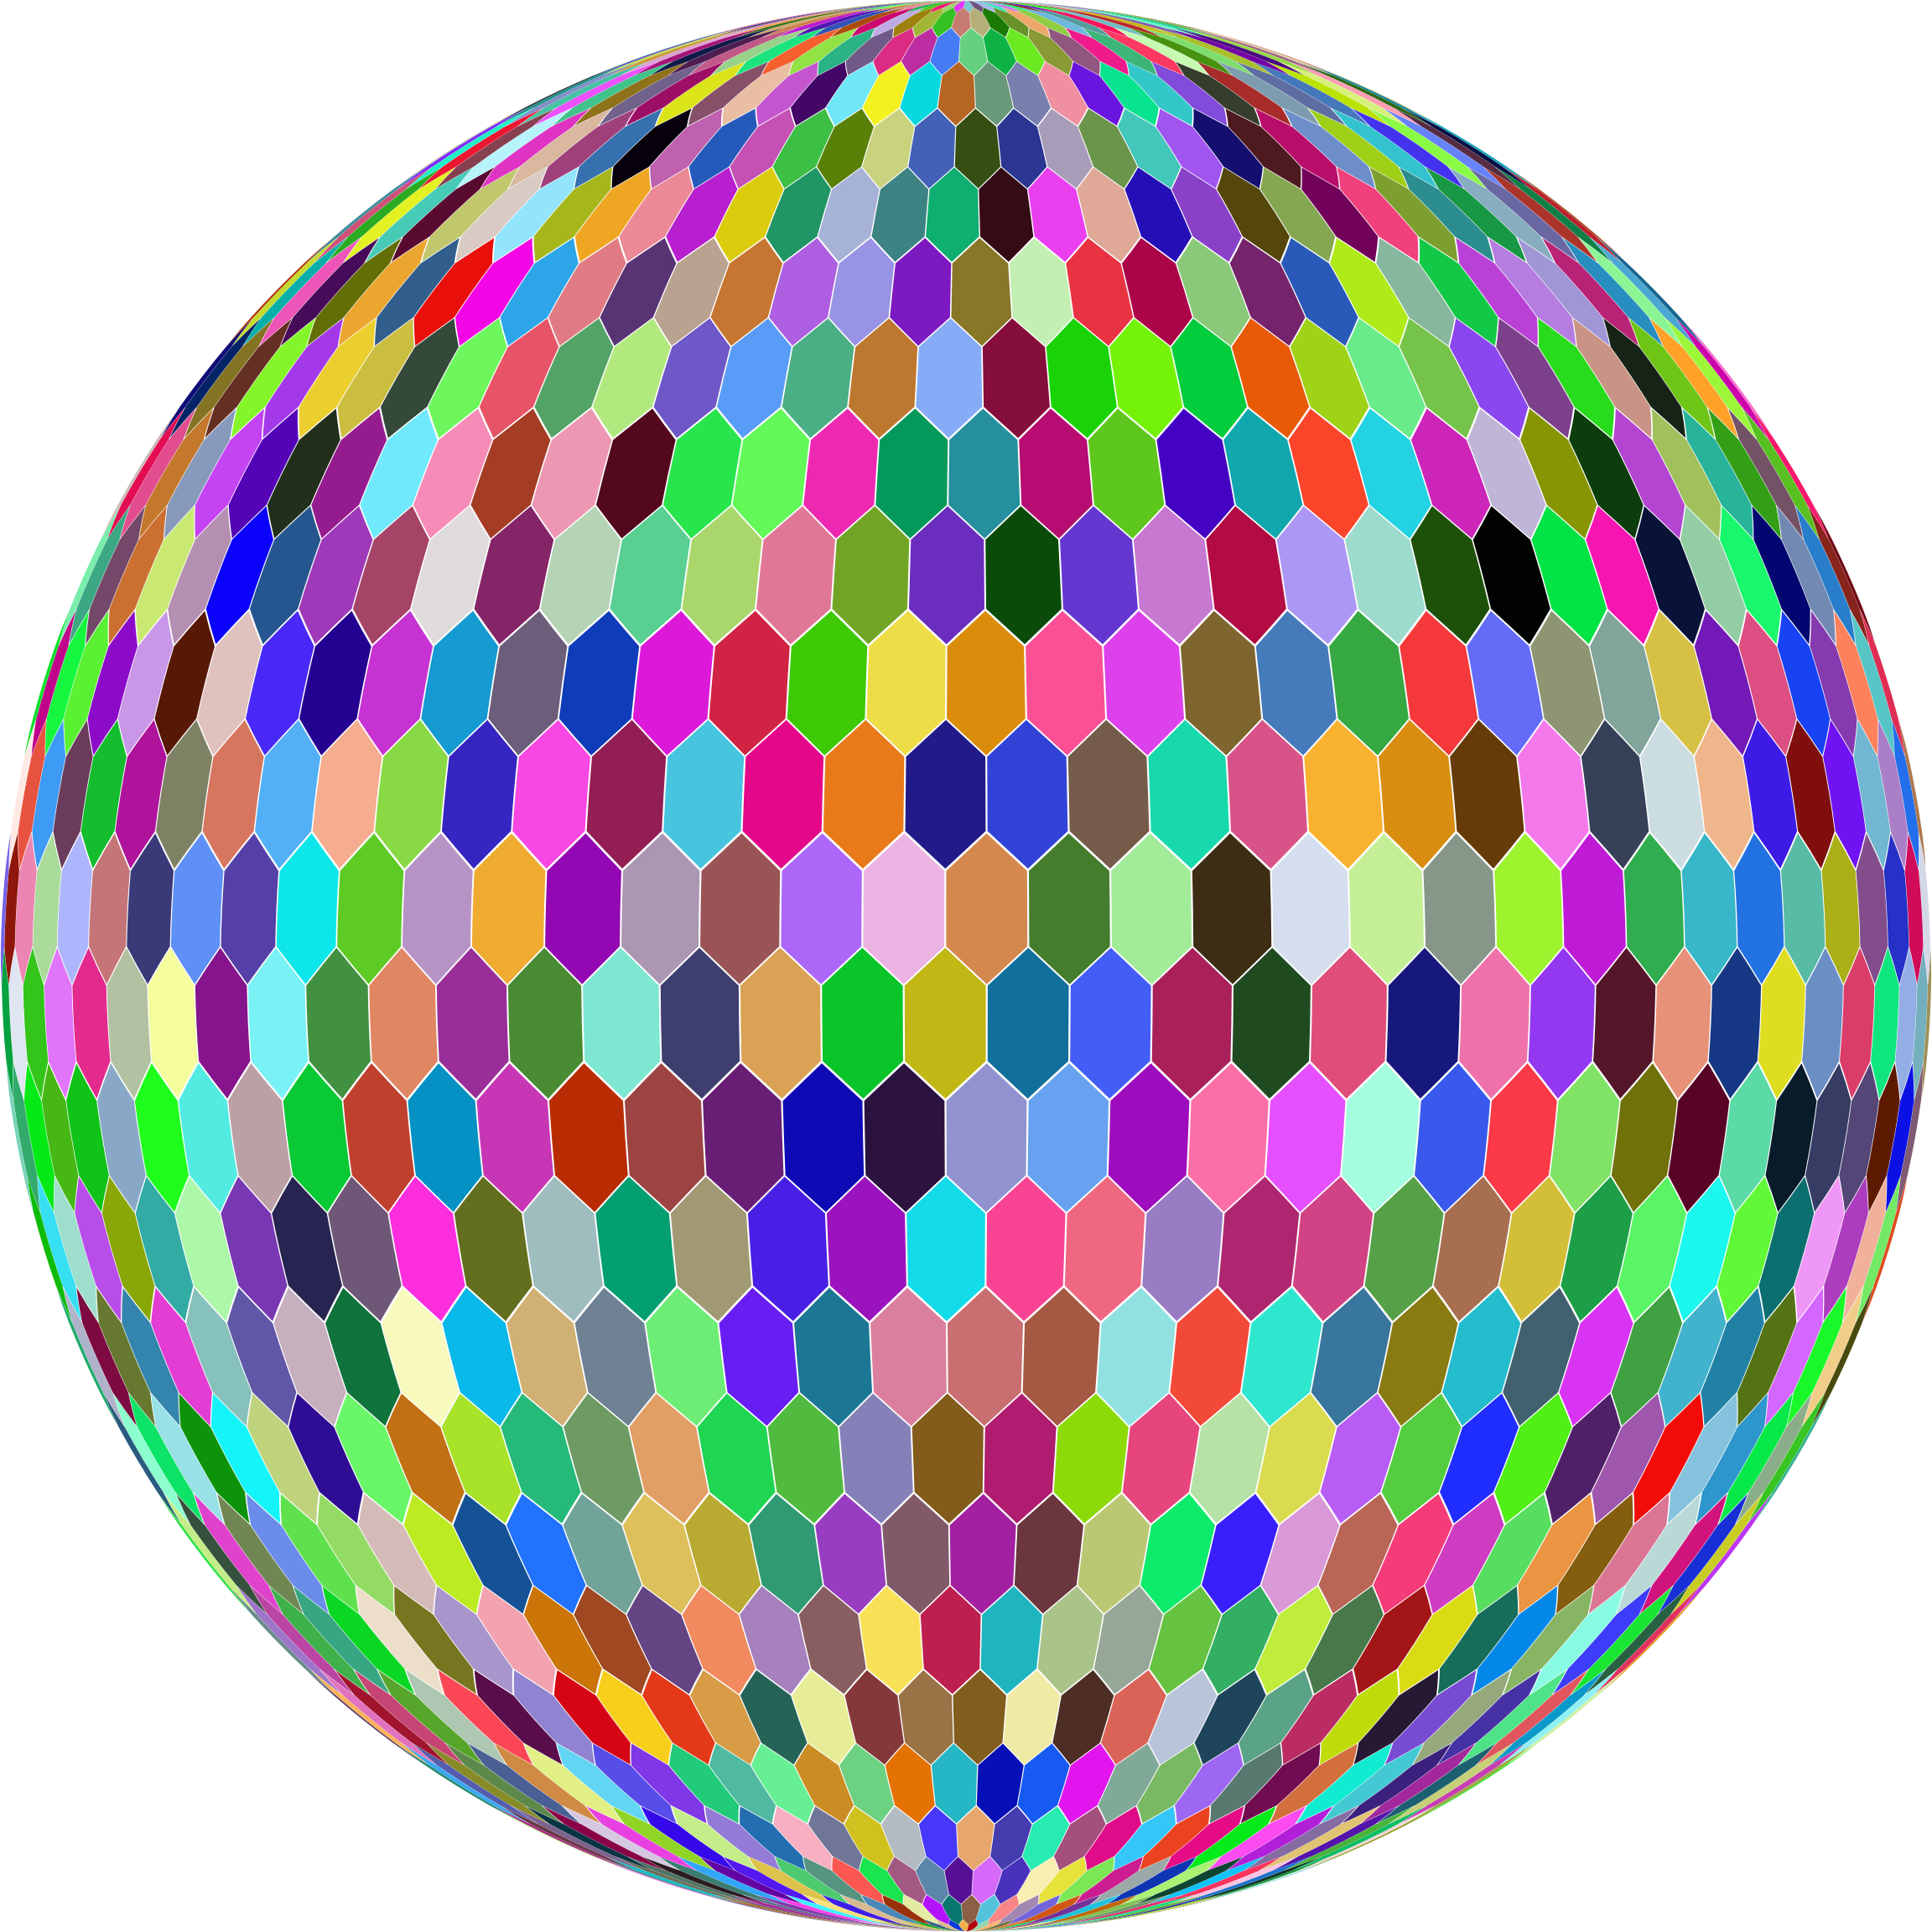 Prismatic Hexagonal Grid Sphere Variation 2 by GDJ